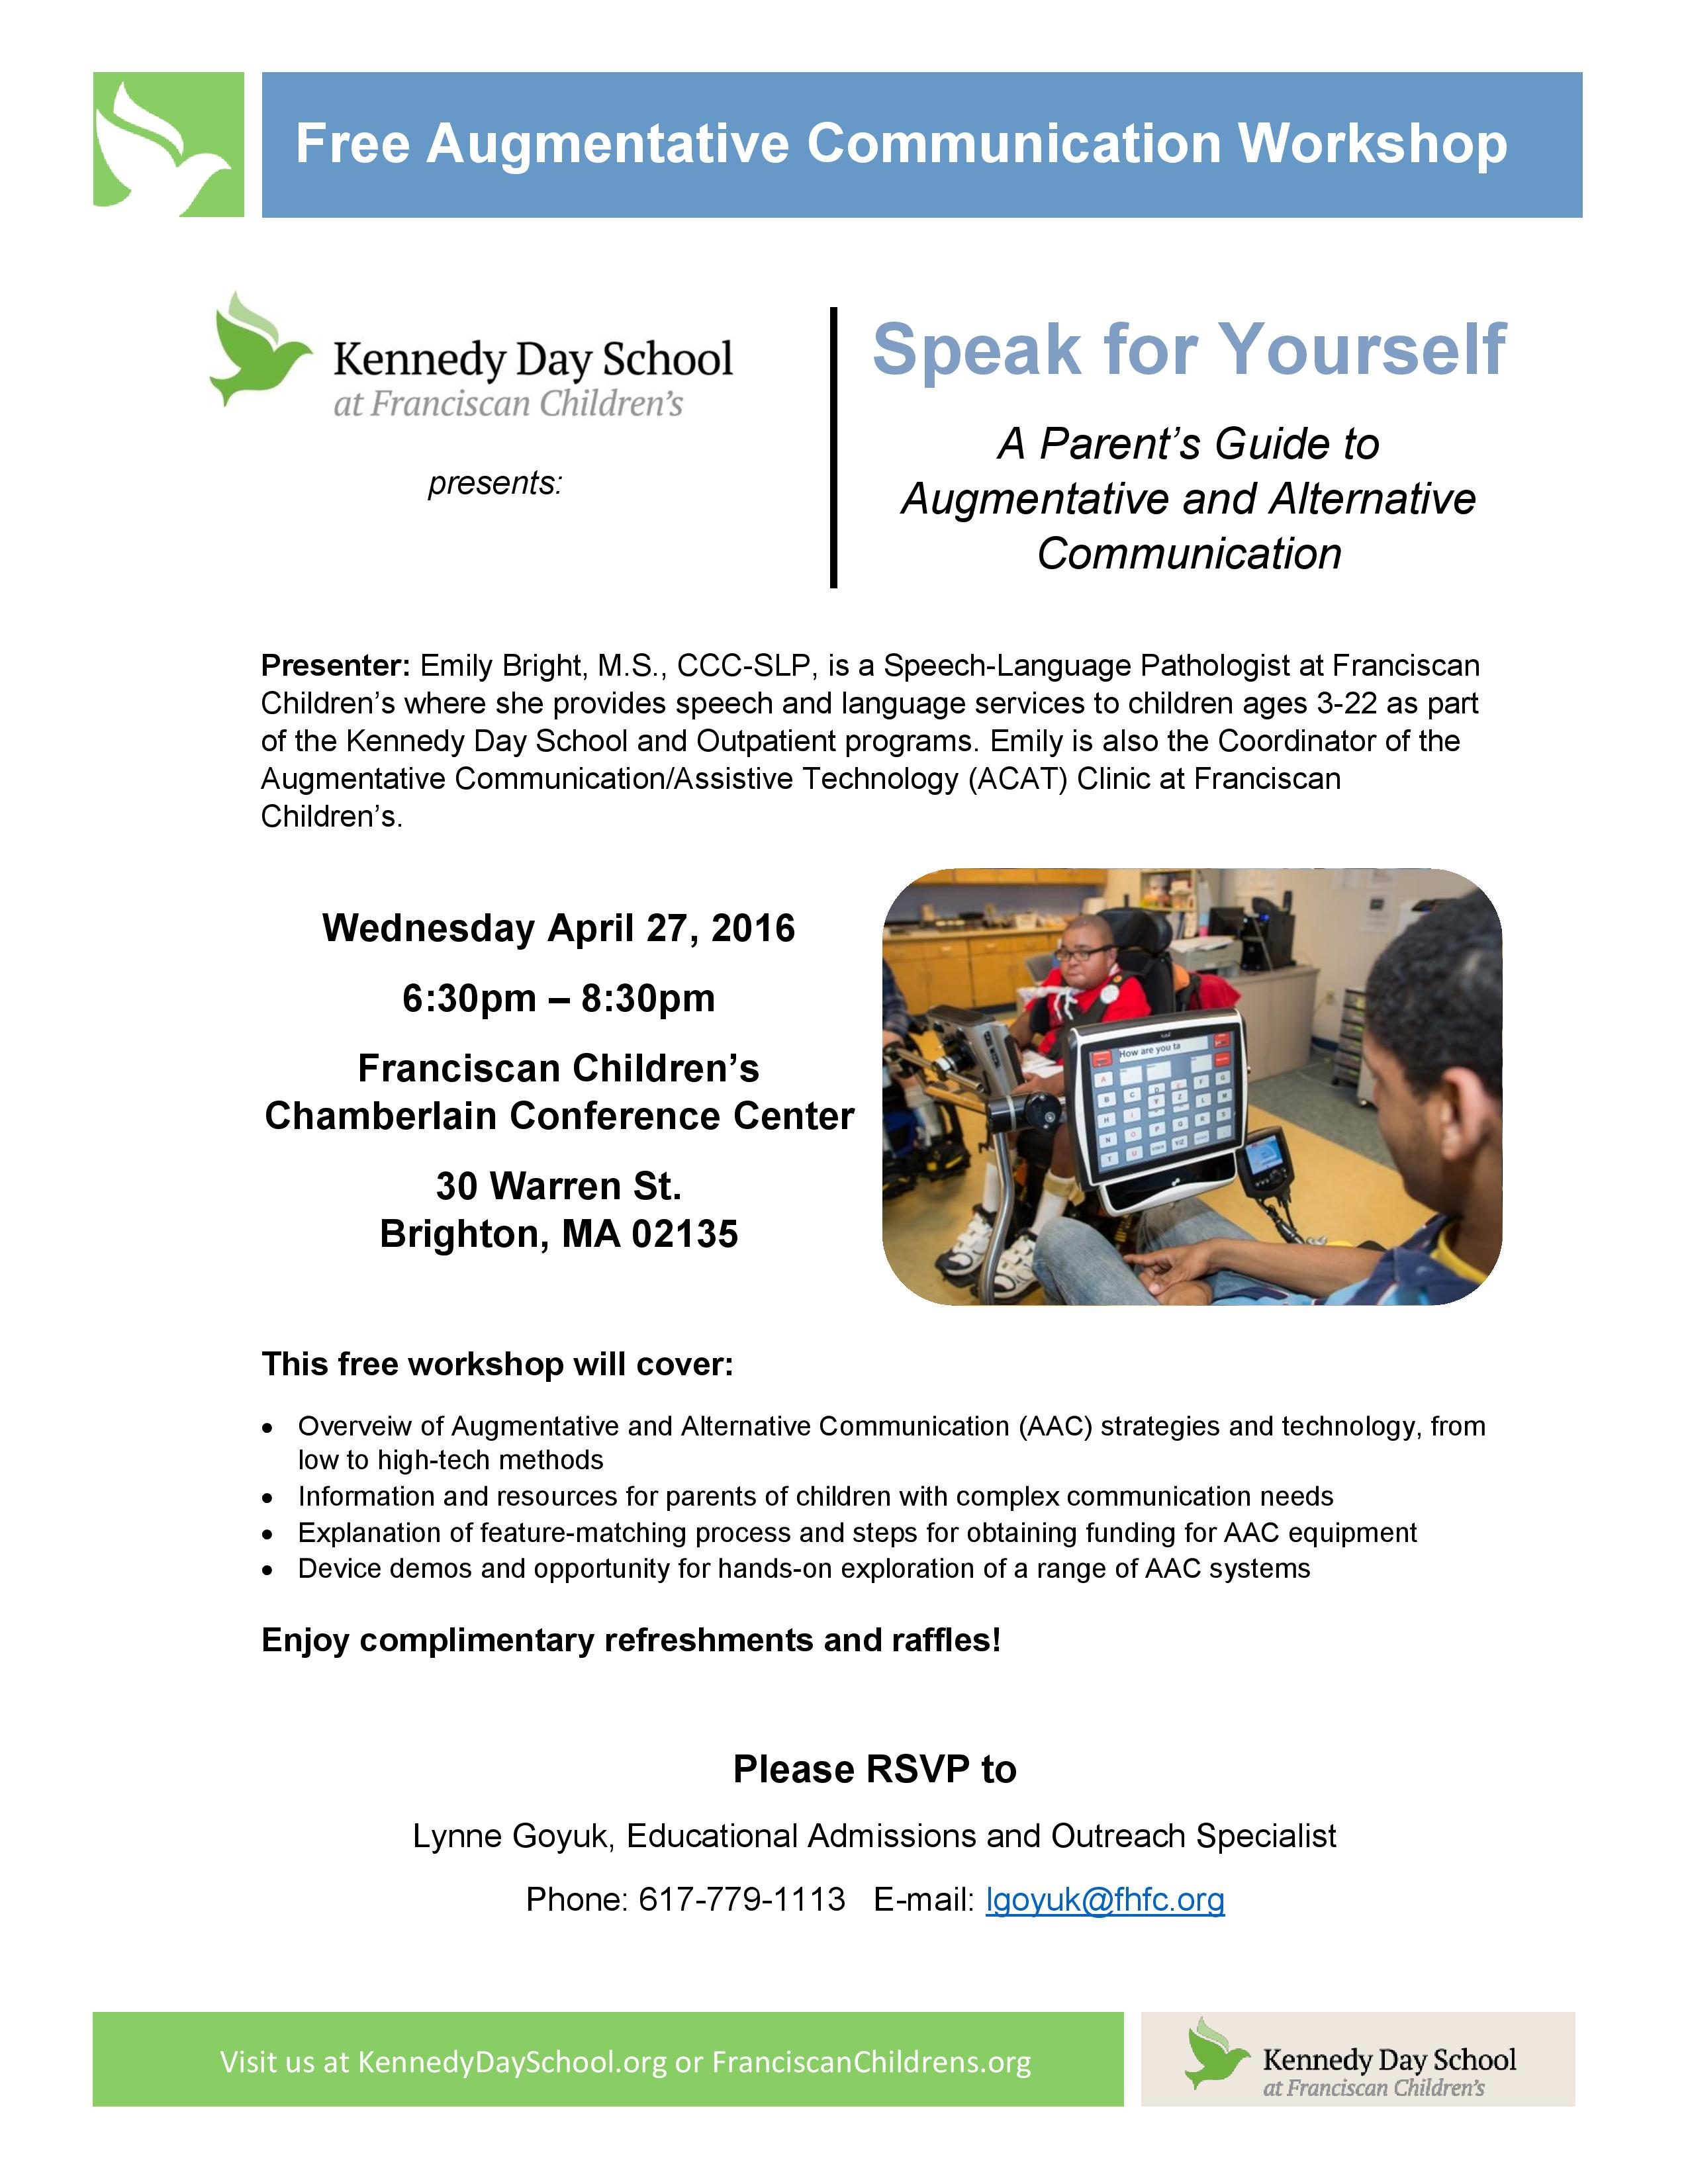 Free Workshop April 27th Speak For >> Speak For Yourself Workshop A Parent S Guide To Augmentative And